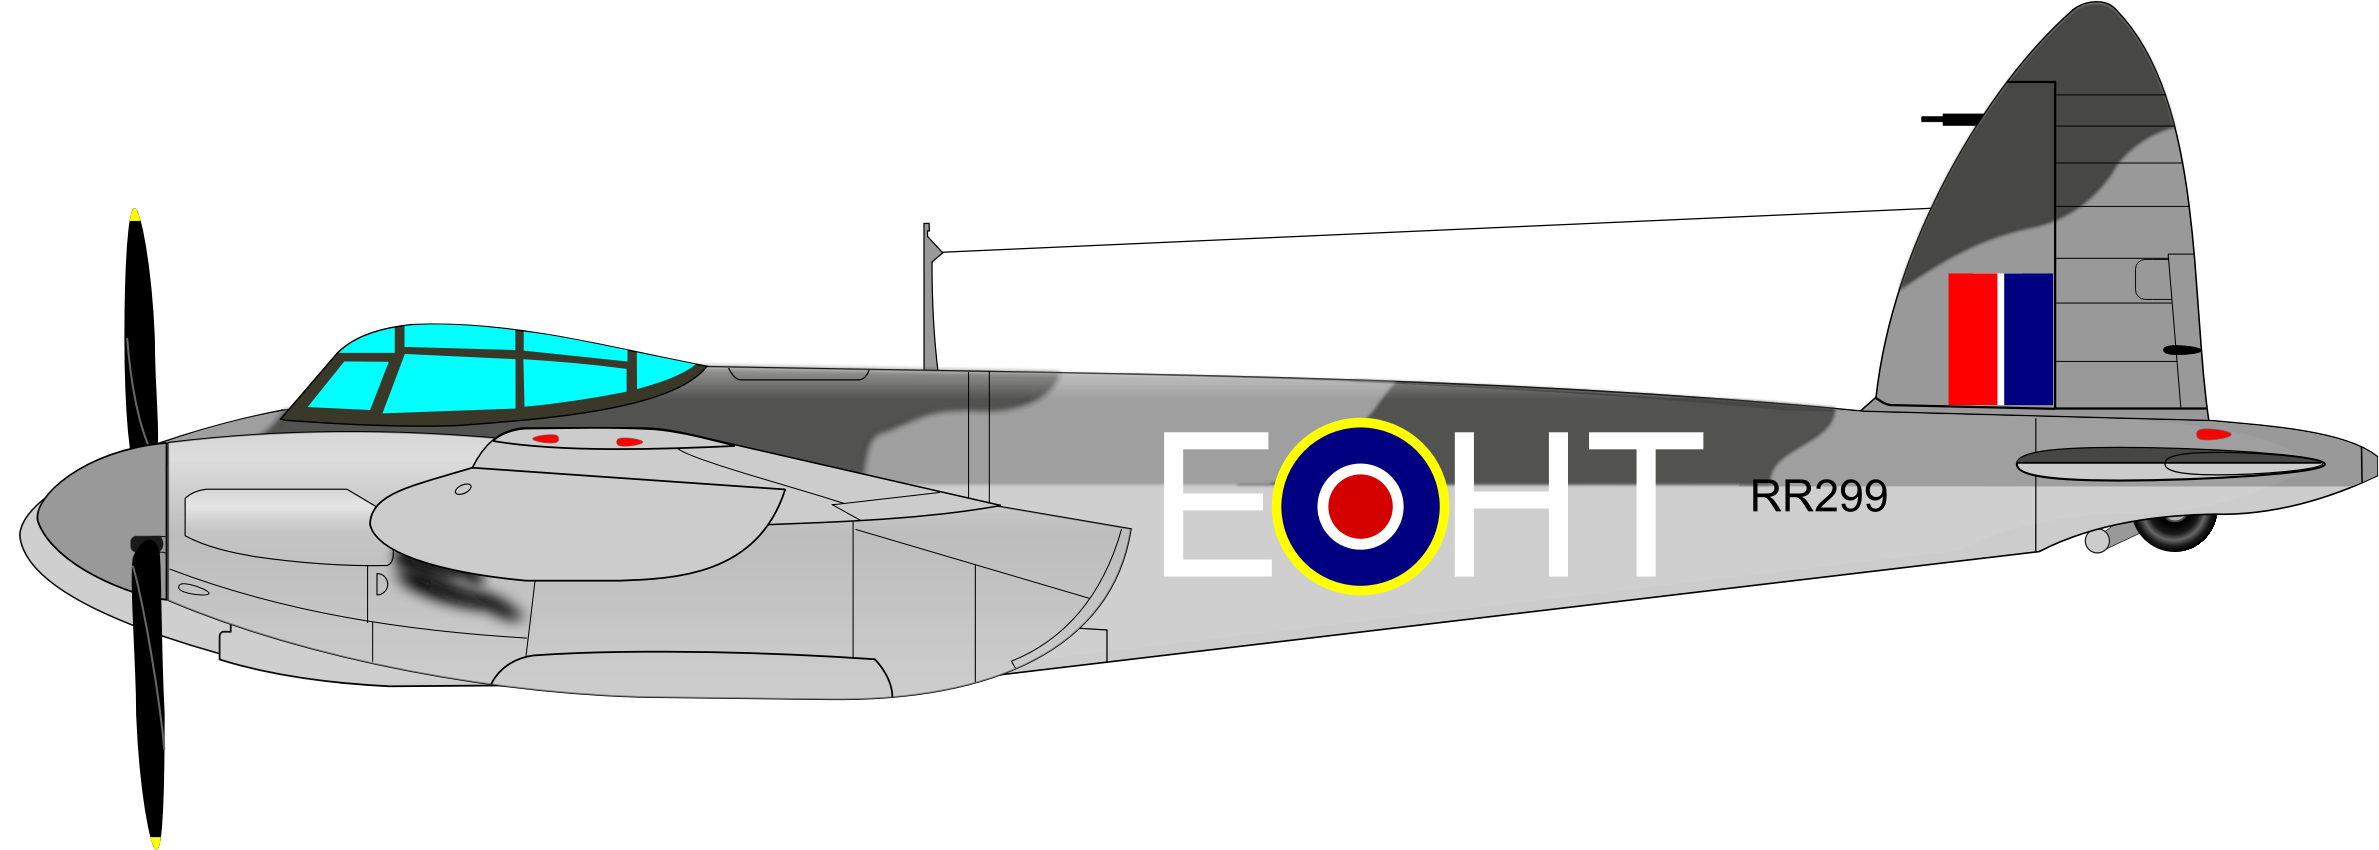 DE HAVILLAND MOSQUITO by charner1963